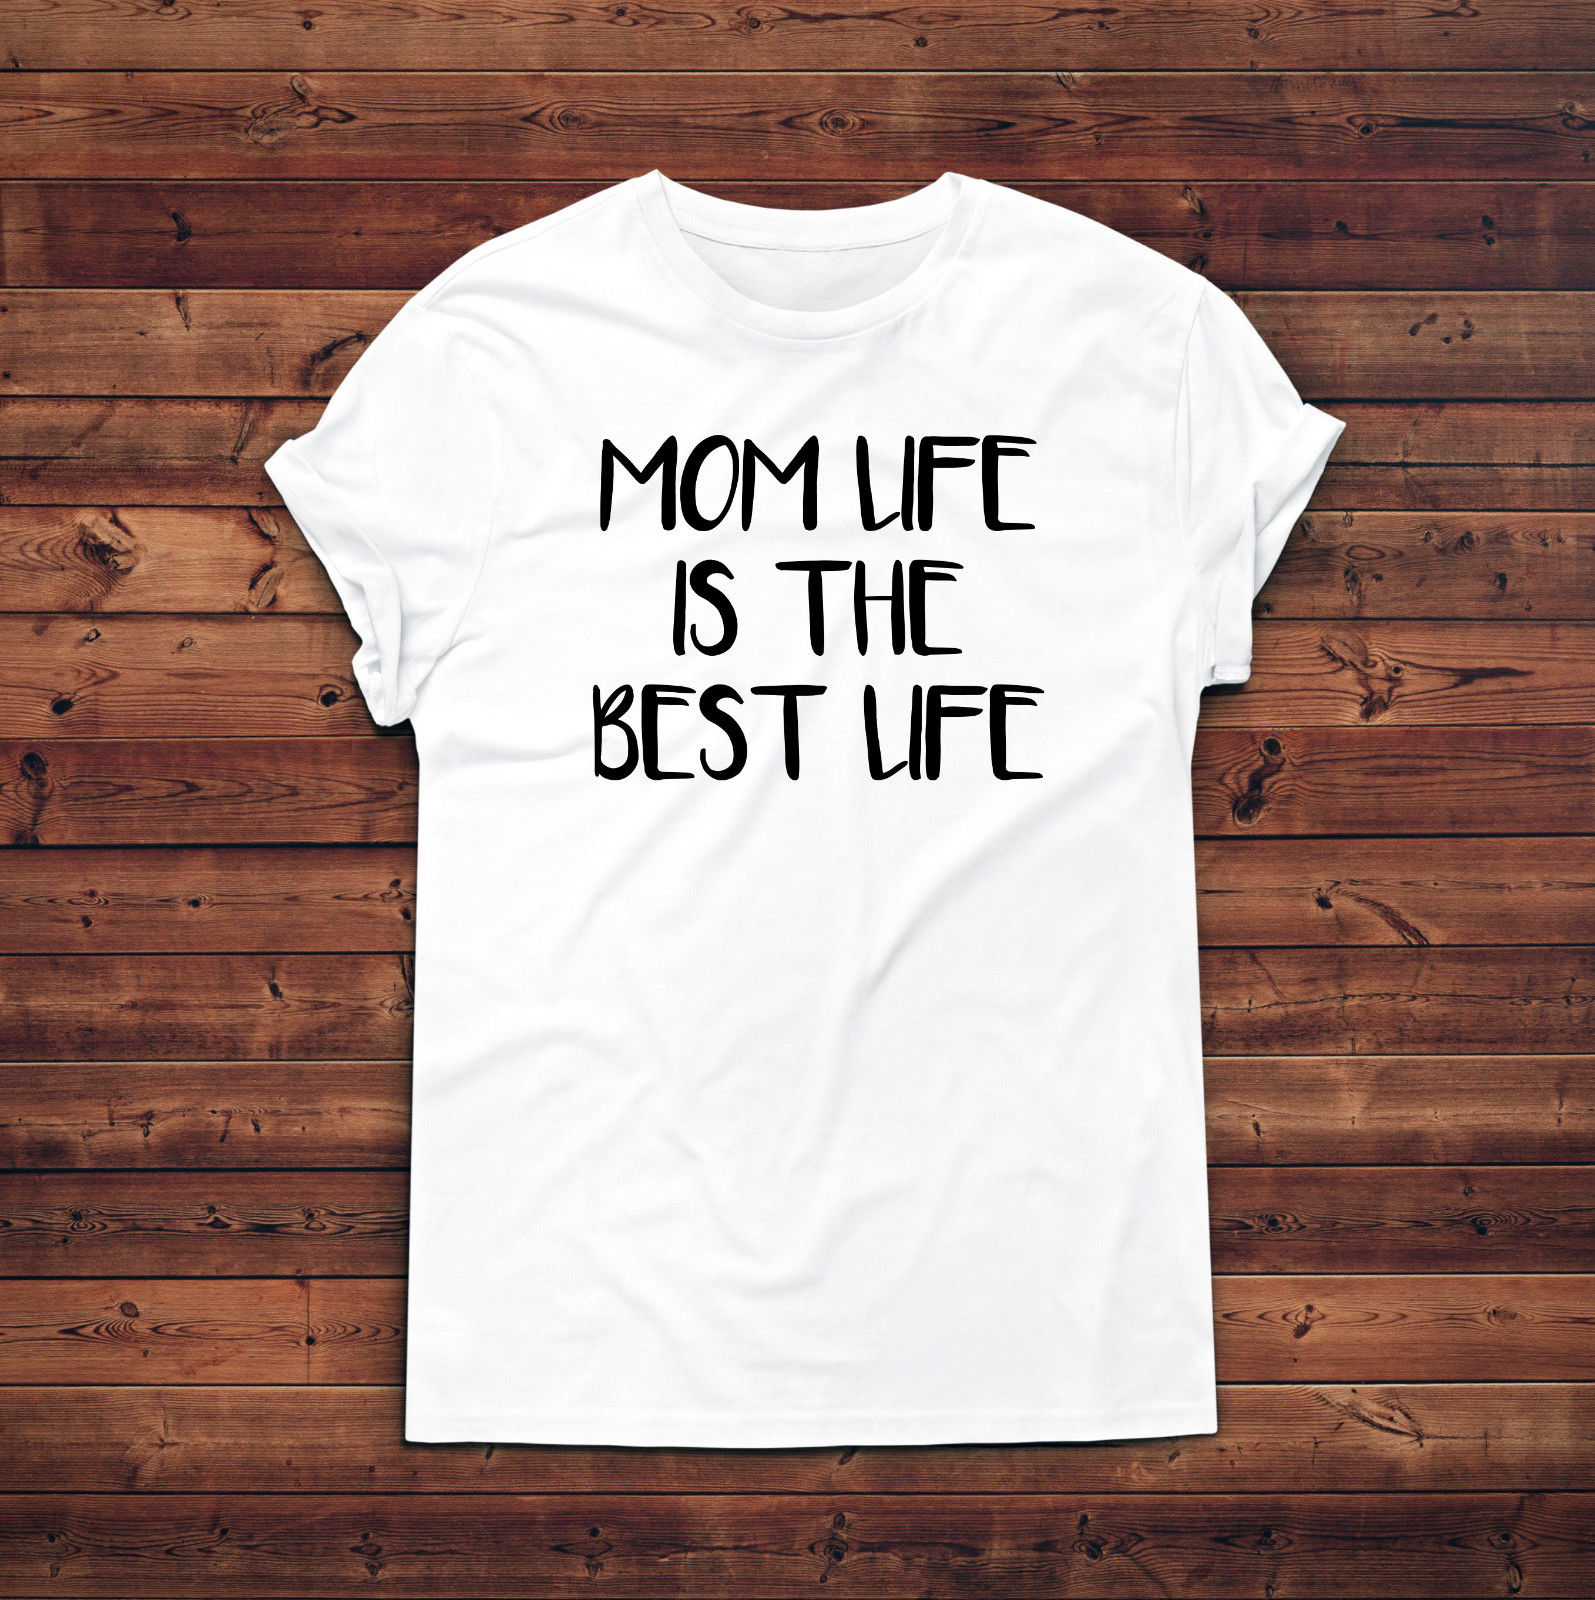 Mom Life Is The Best Shirt,Gift for Mom,Mom T-Shirt,Mothers Day Gift, New T Shirts Funny Tops Tee Unisex